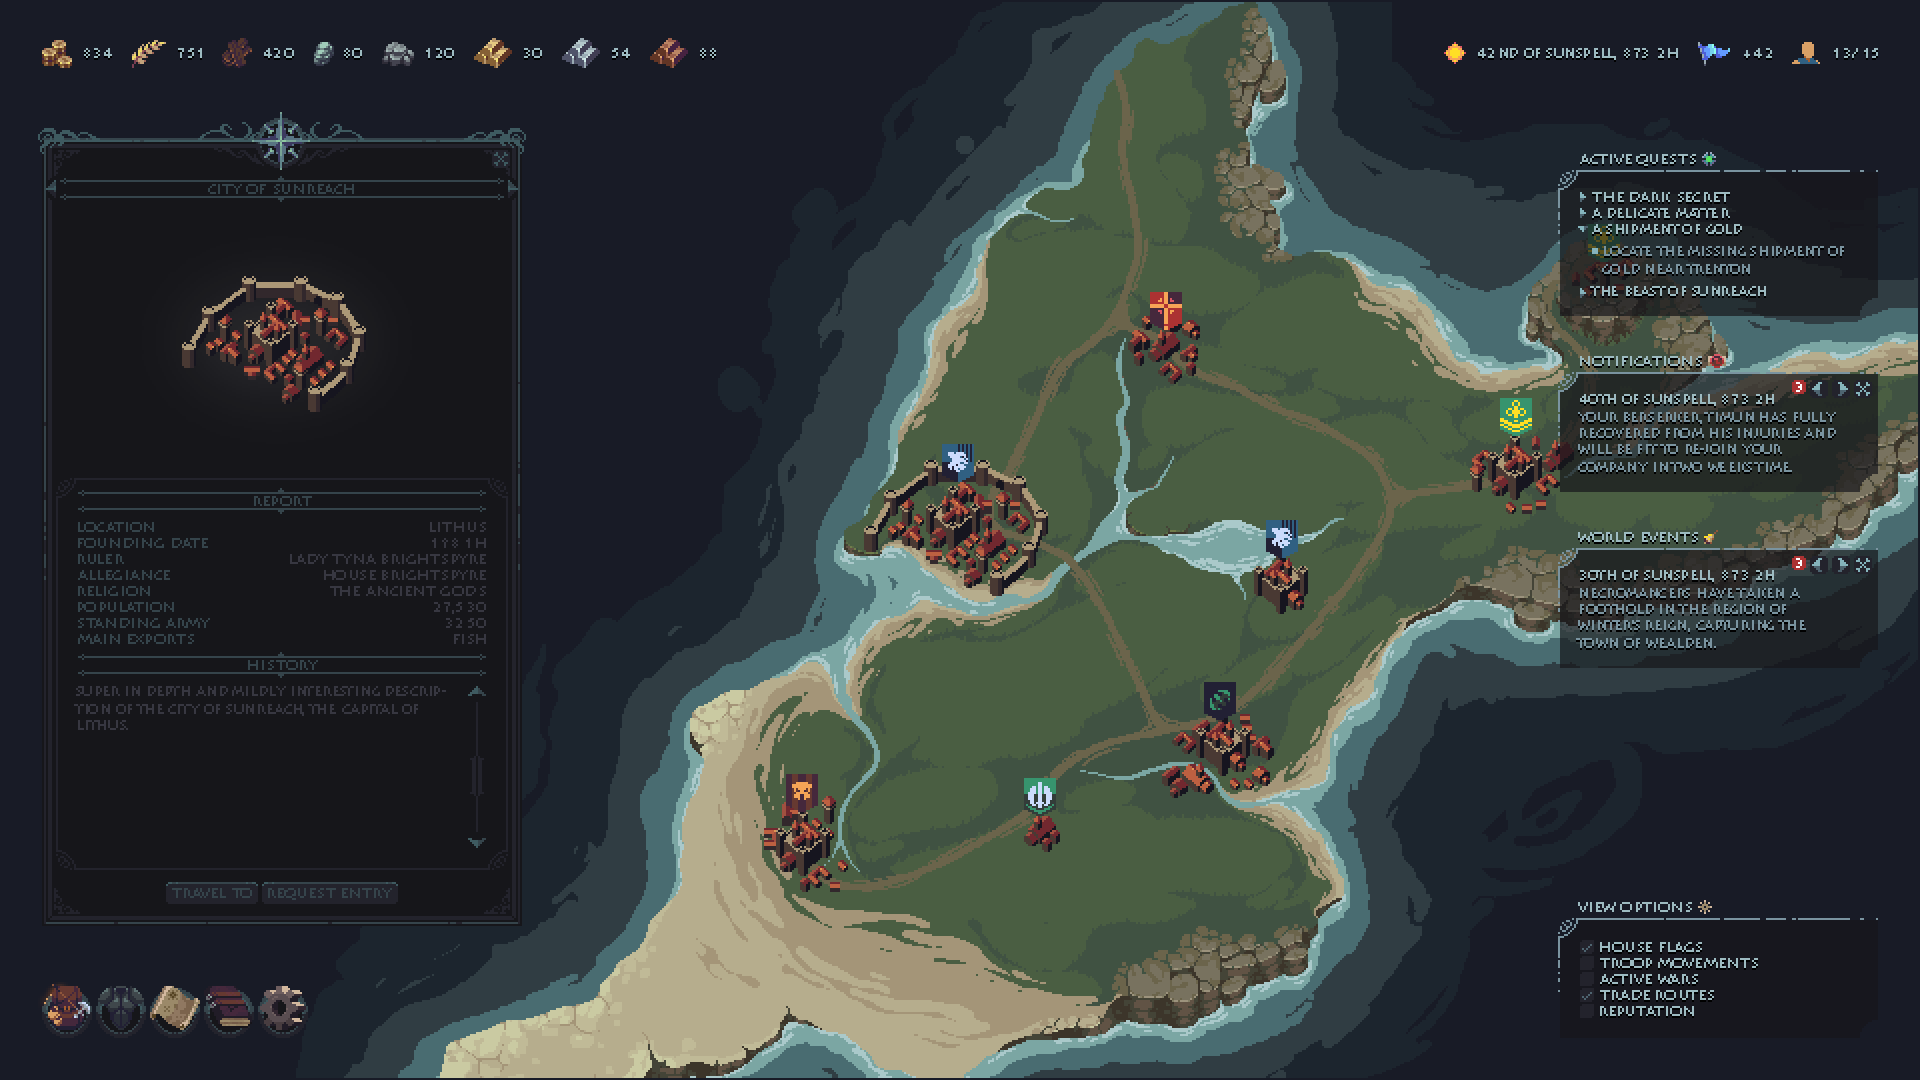 World map ui mockup image the iron oath indie db add media report rss world map ui mockup view original gumiabroncs Gallery